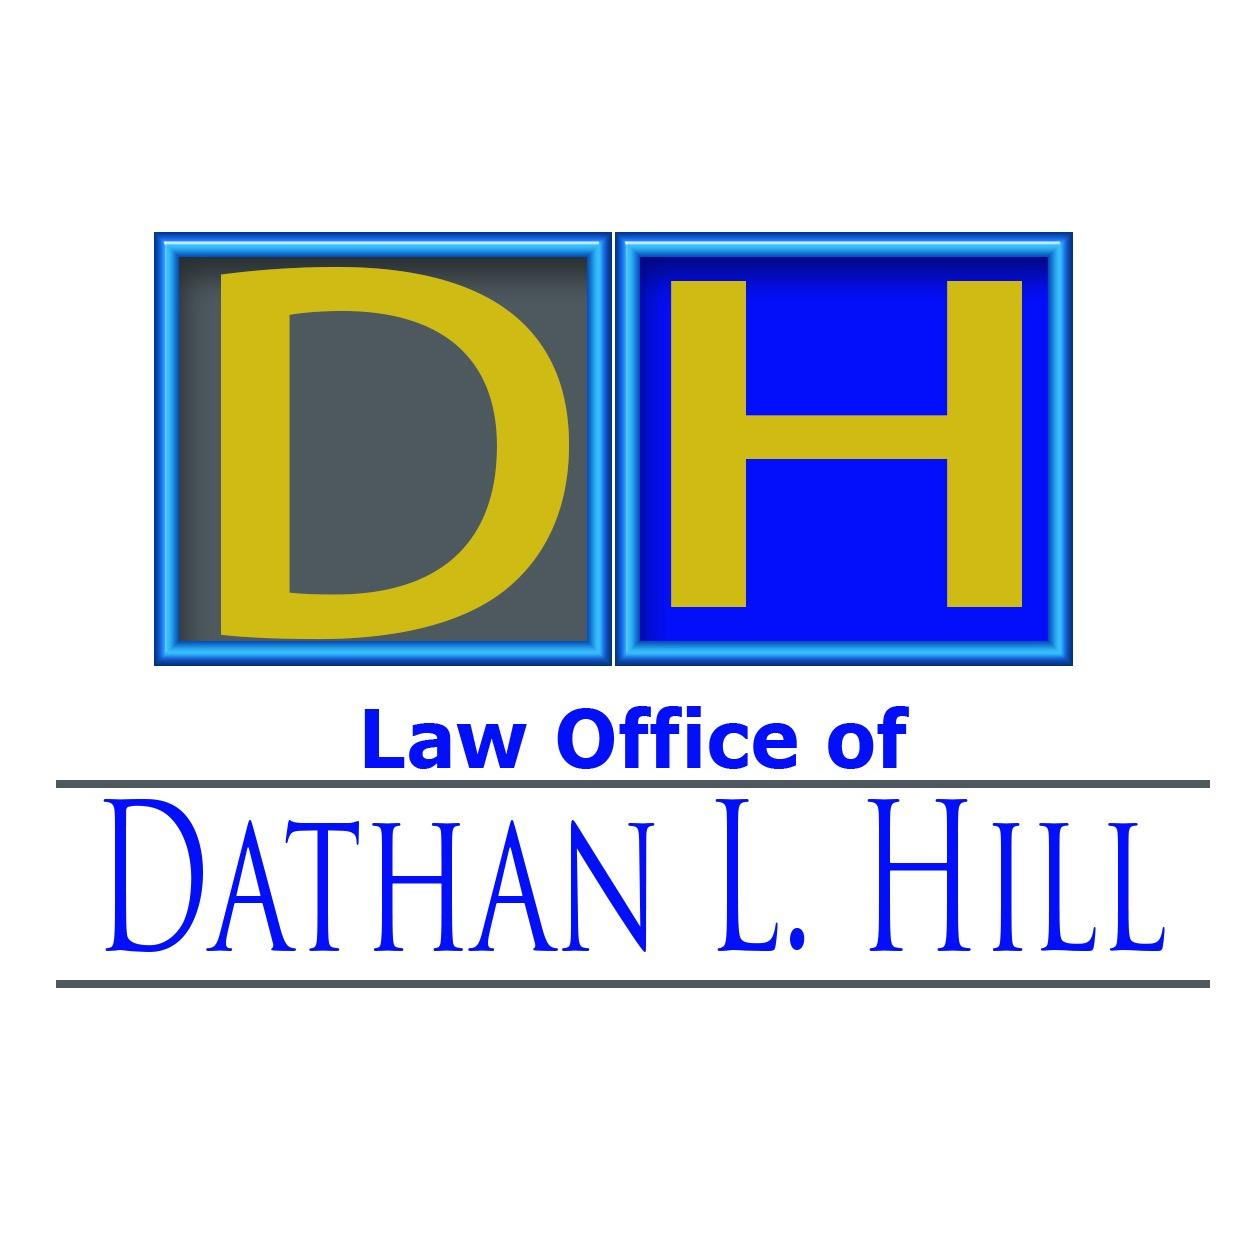 The Law Office of Dathan L. Hill